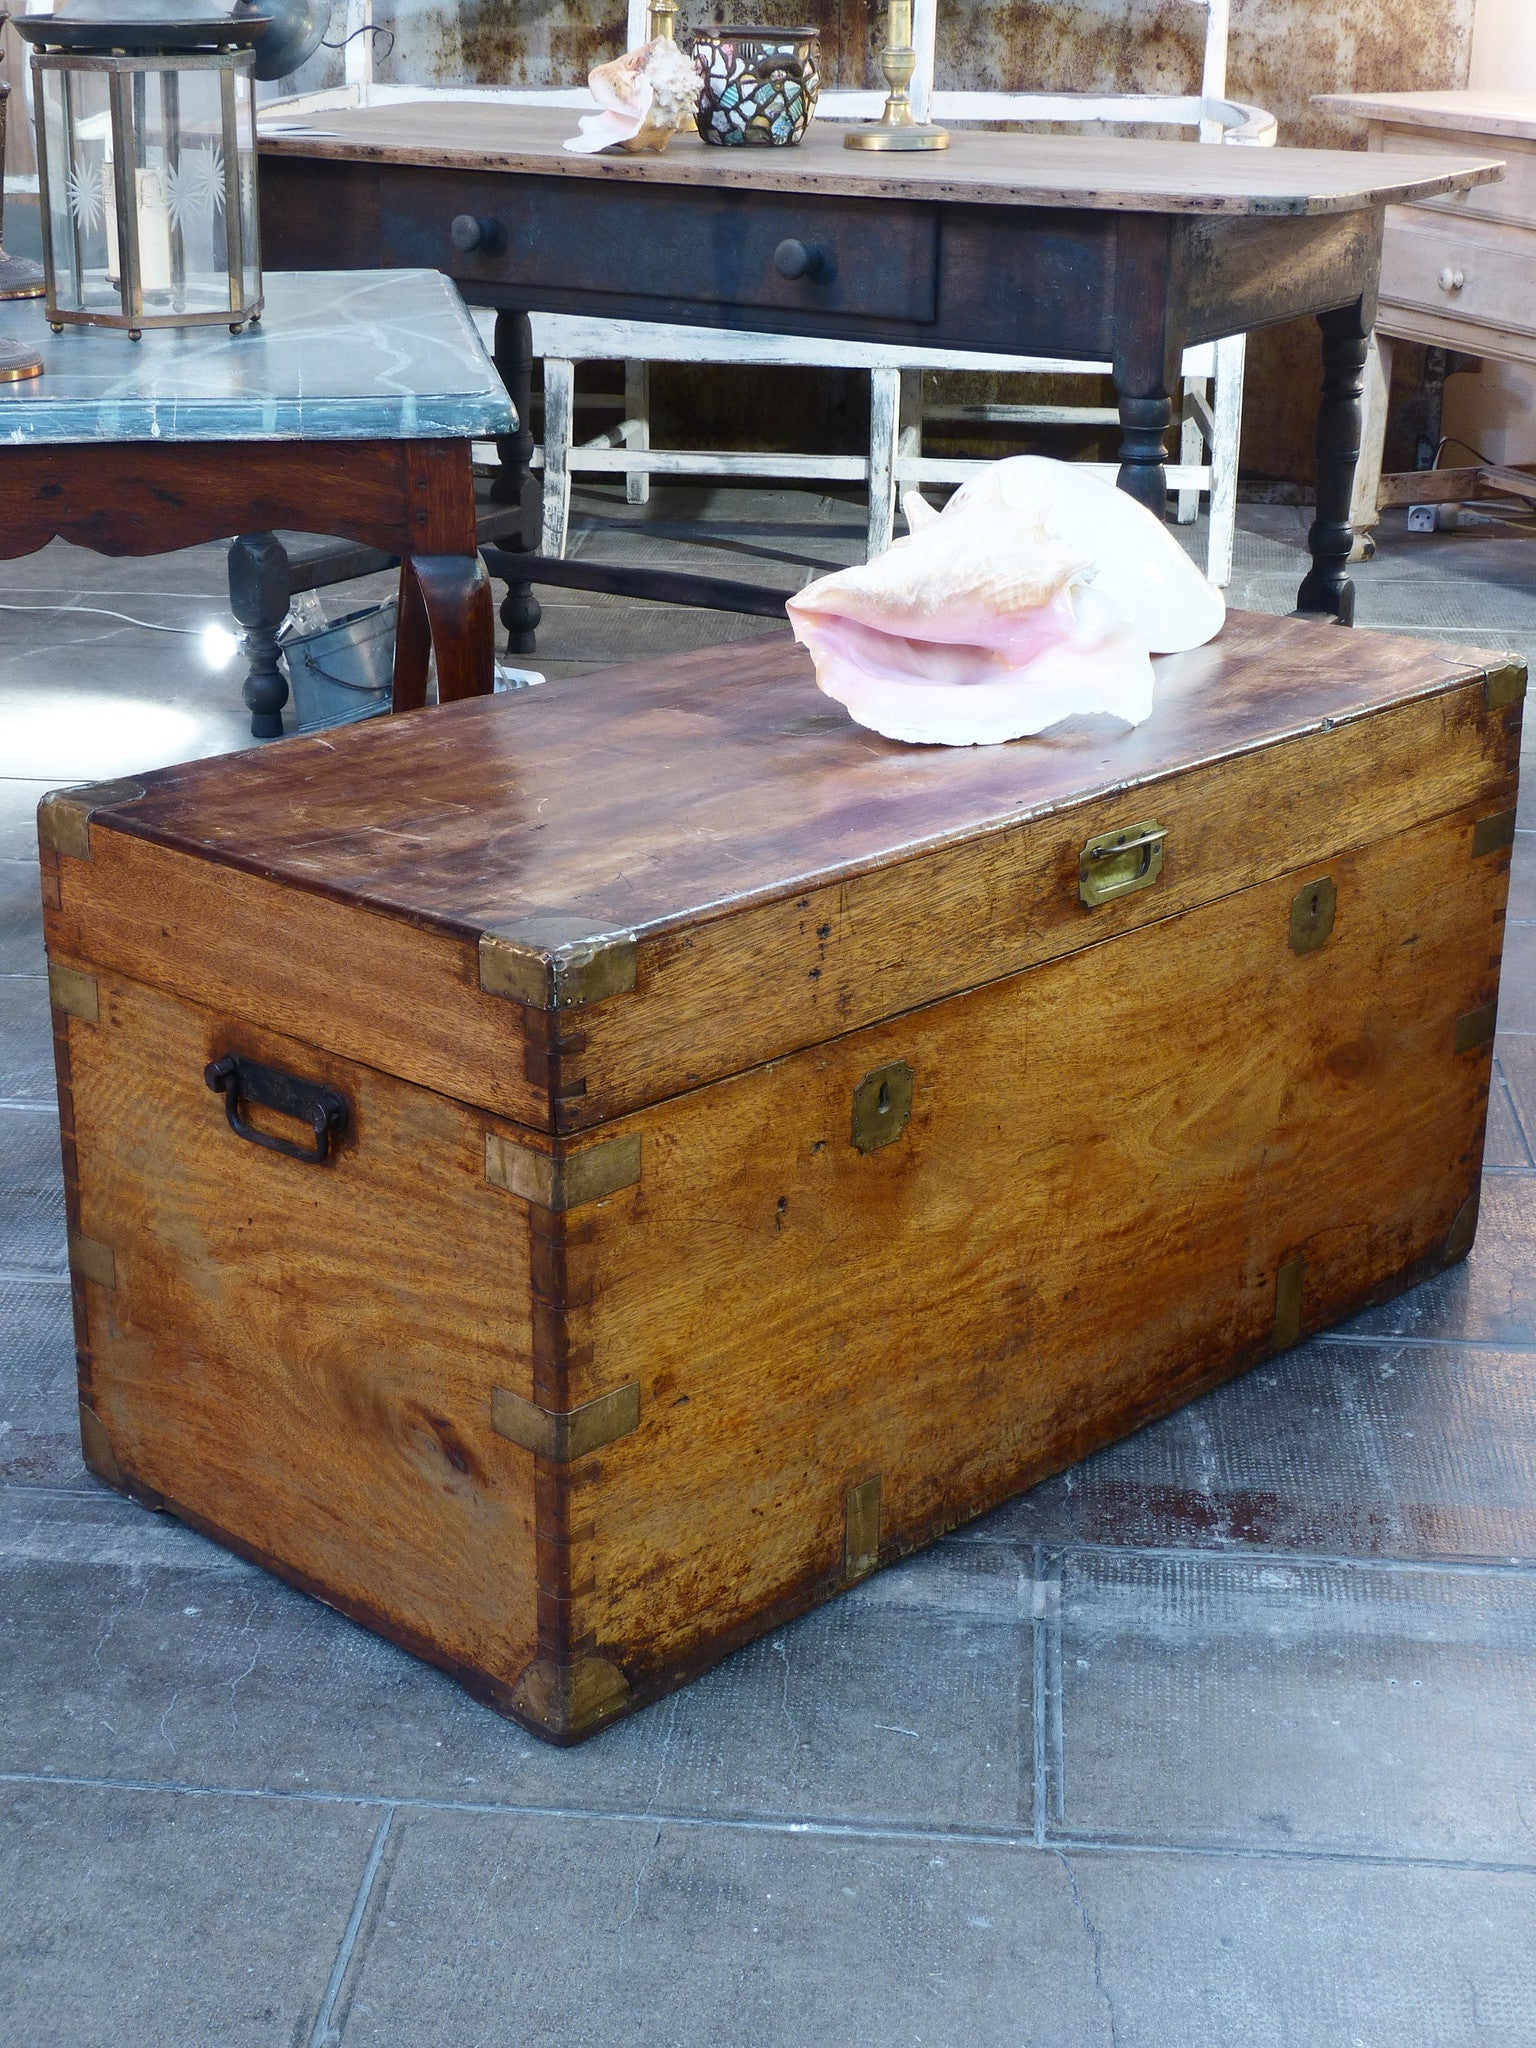 French storage trunk - 19th century